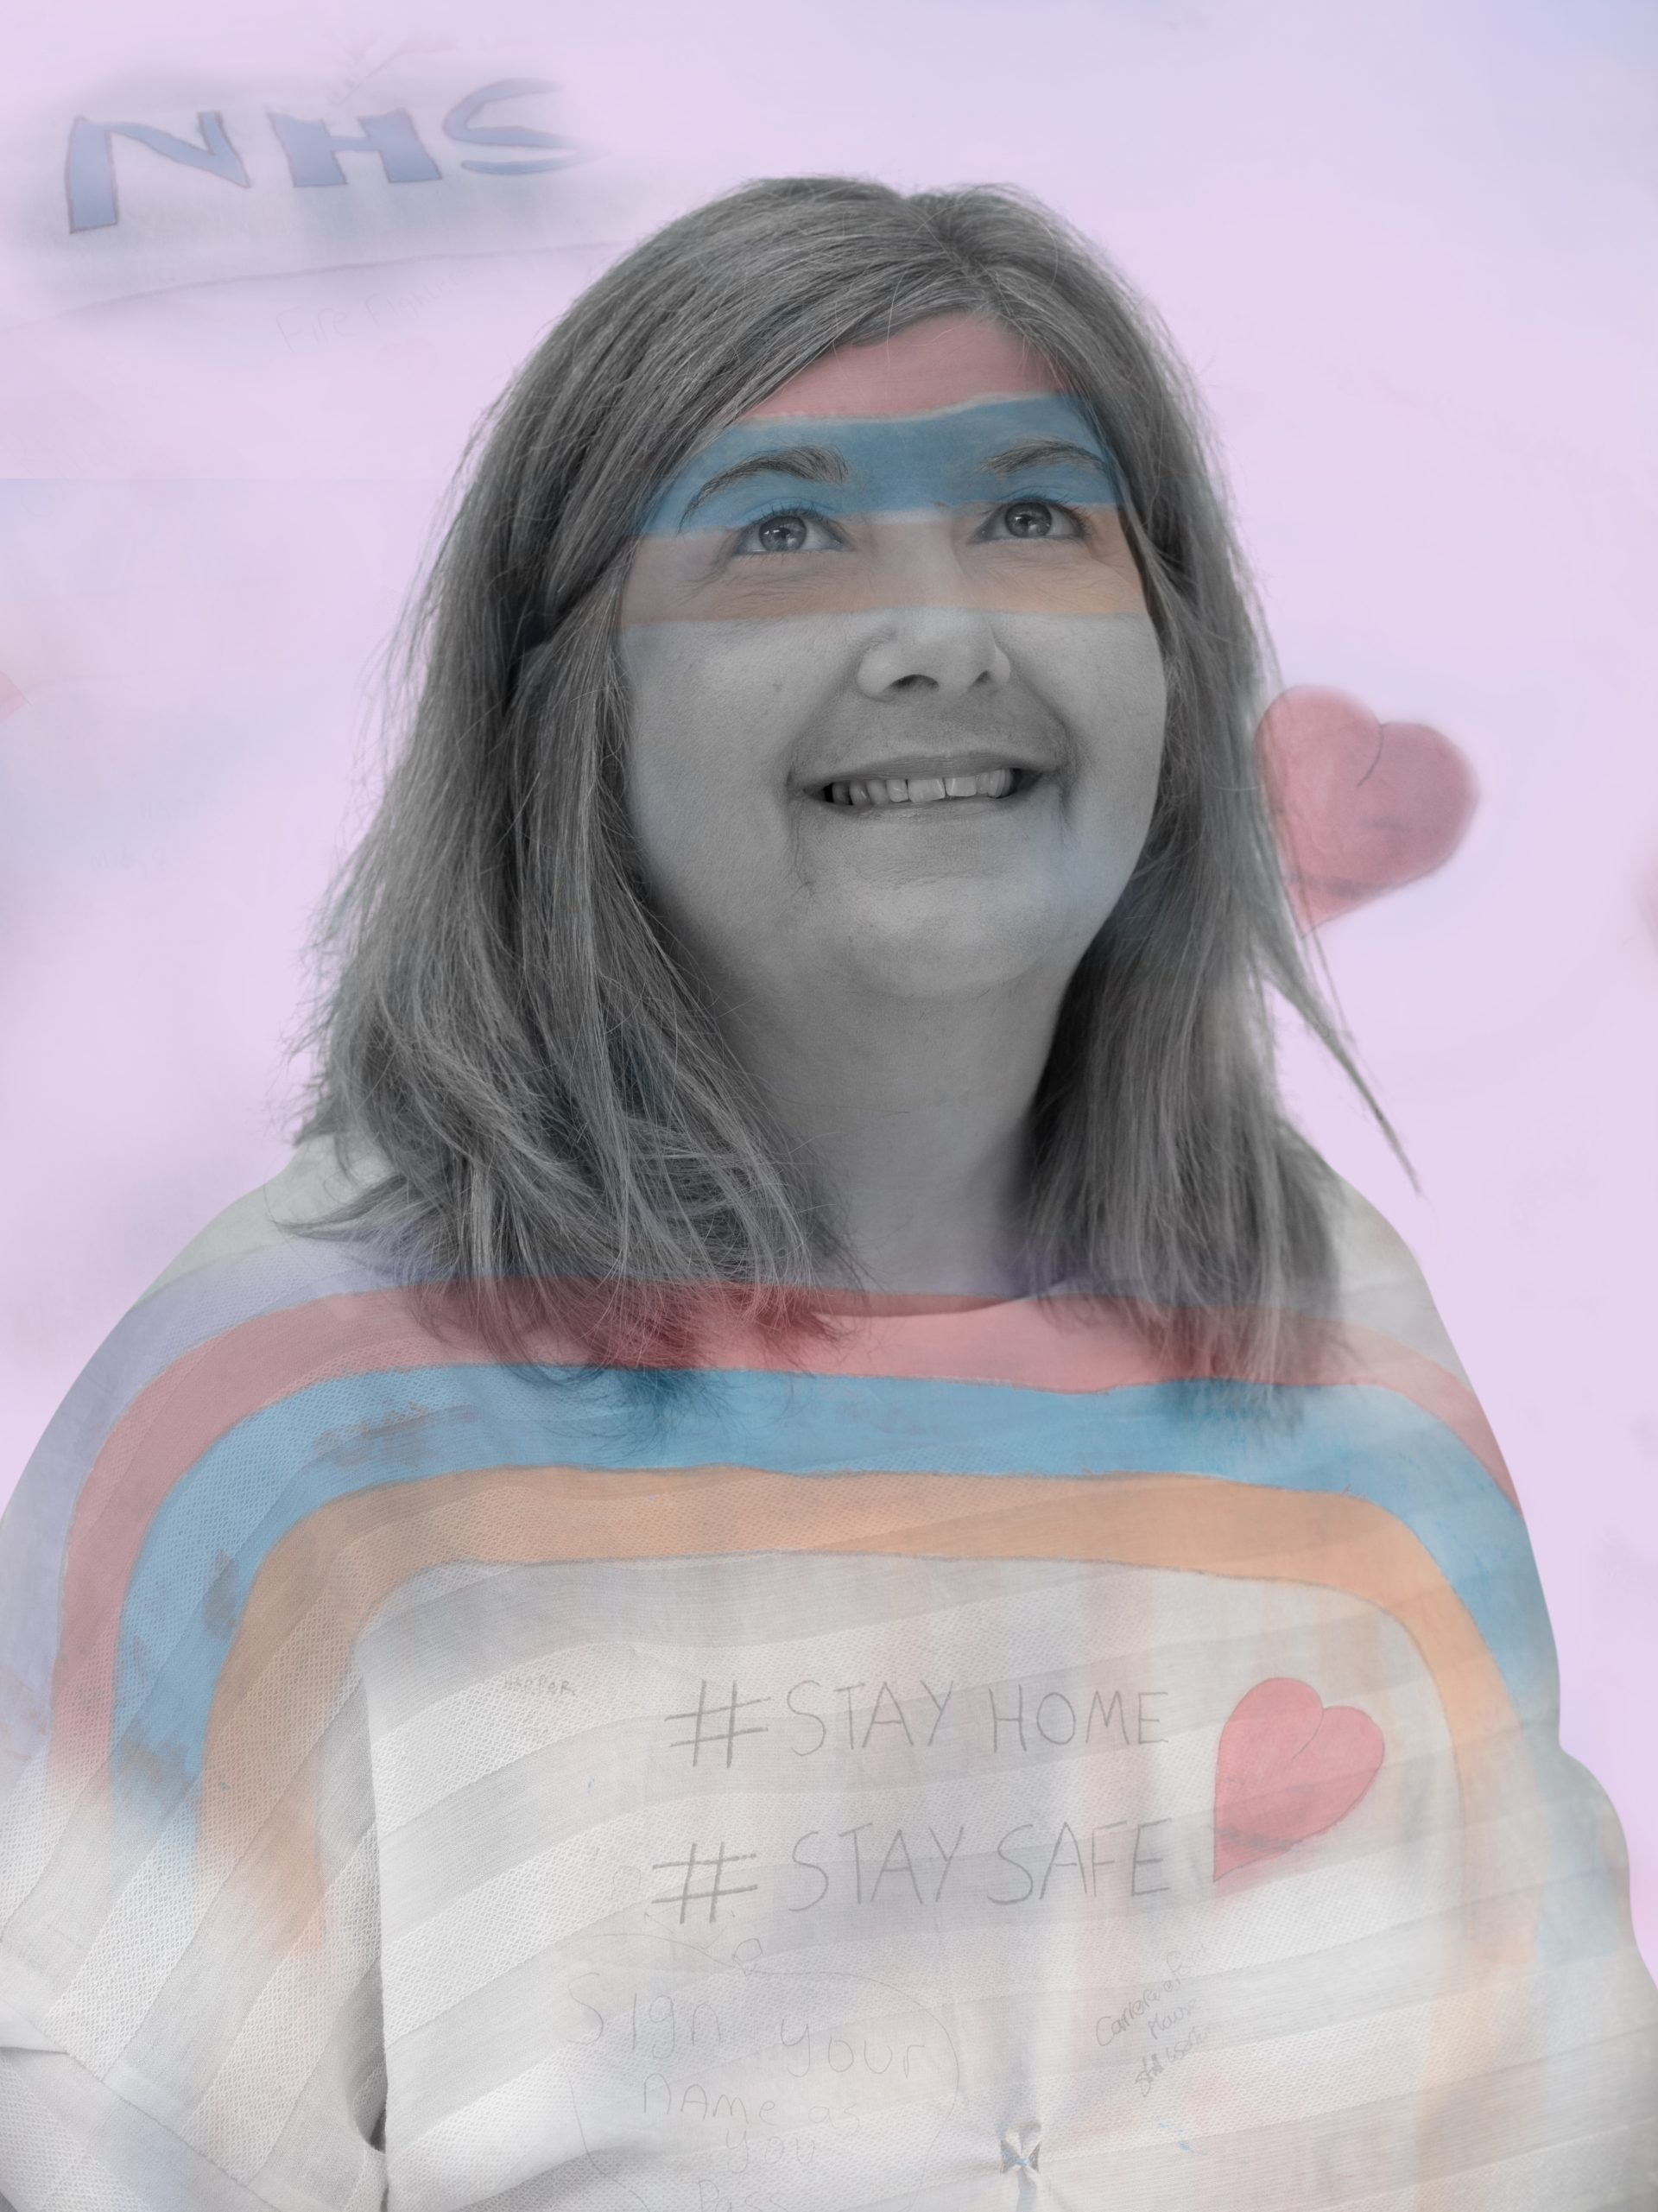 Lady with NHSrainbow